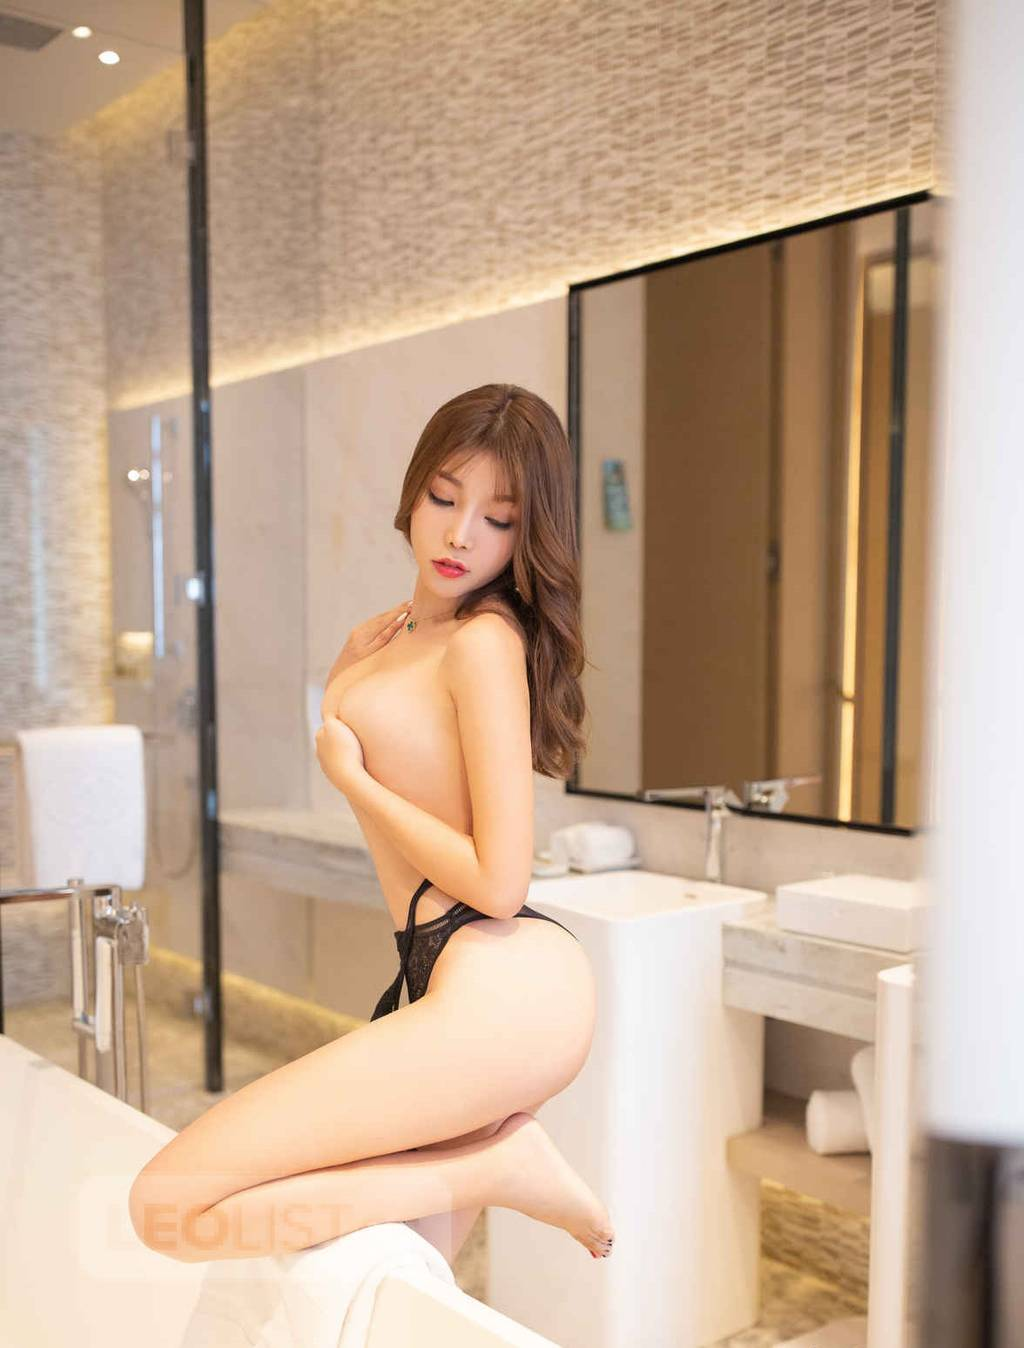 𝔸𝕧𝕒𝕚𝕝𝕒𝕓𝕝𝕖 ℕ𝕆𝕎 $8O  30Mins  Specials  Sexy Sweet In :LANGLEY